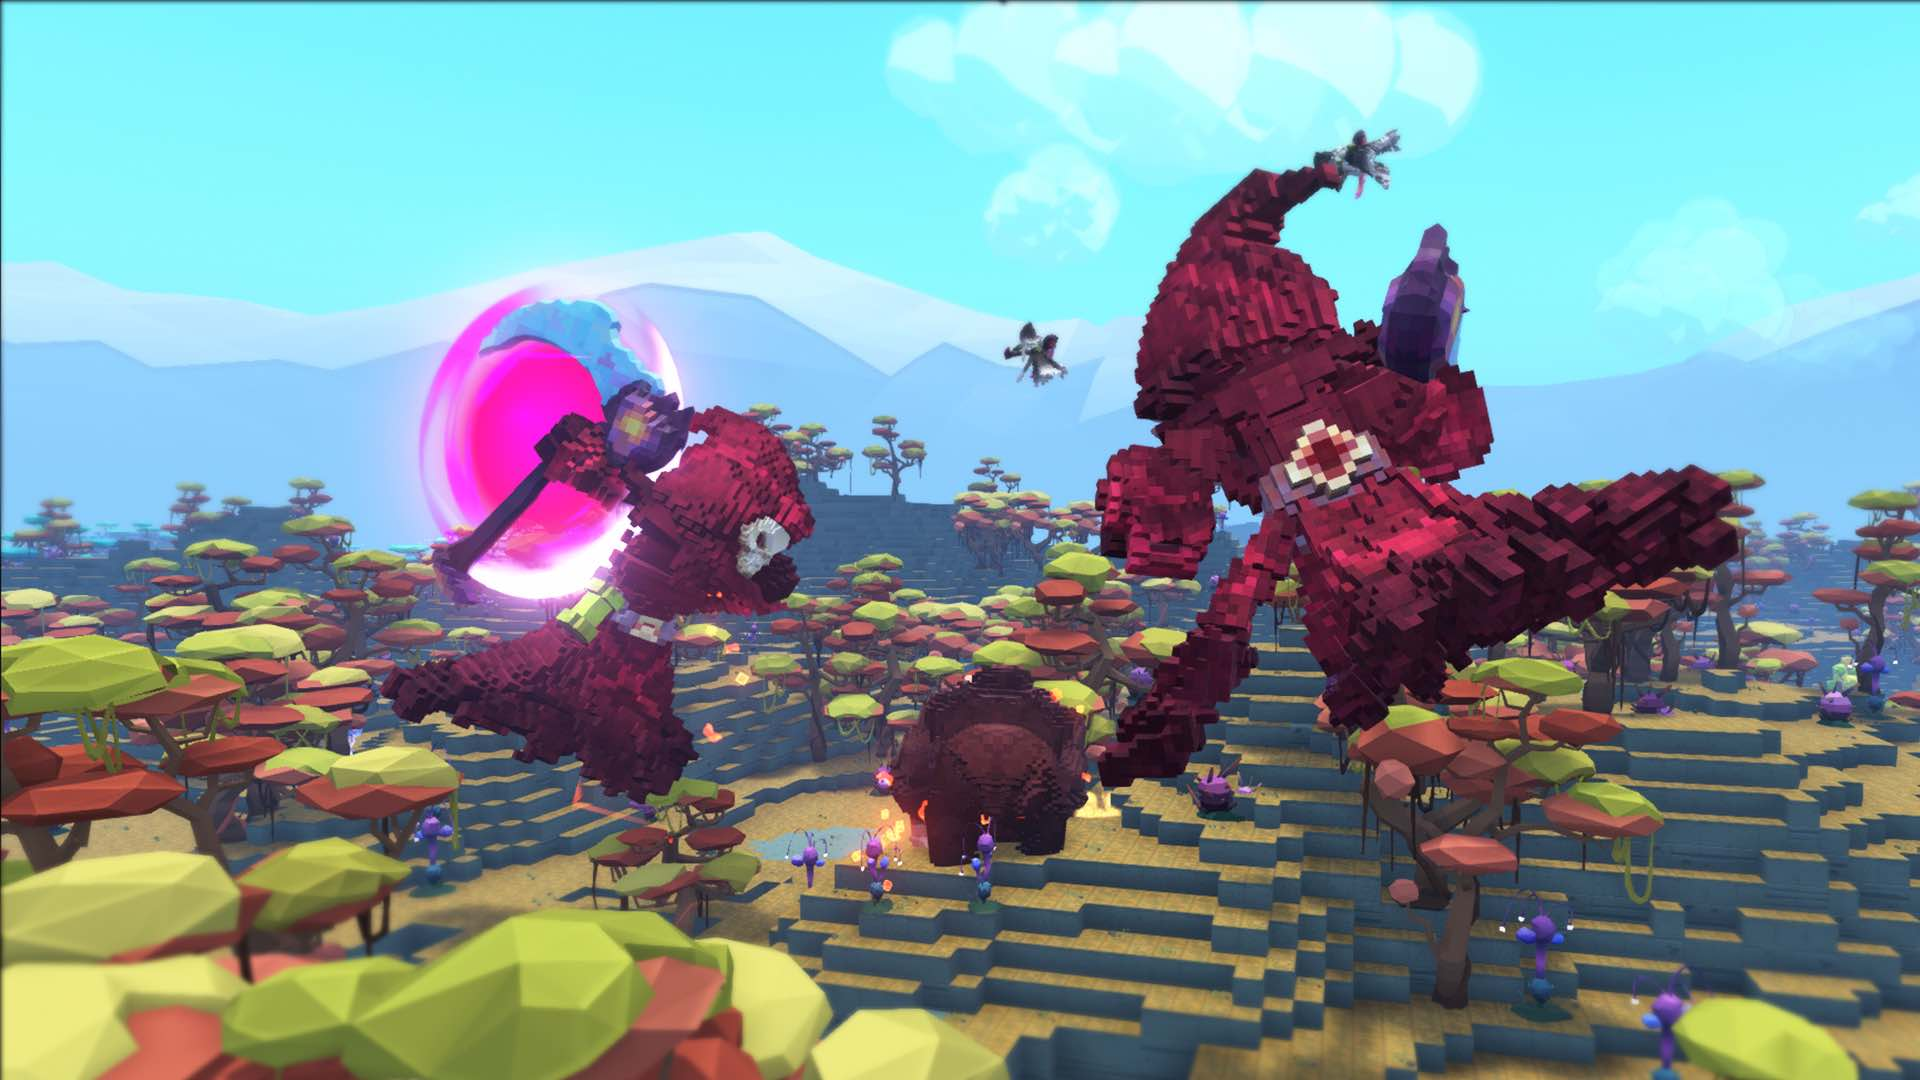 Tame Train And Ride Dinosaurs In PixARK On Nintendo